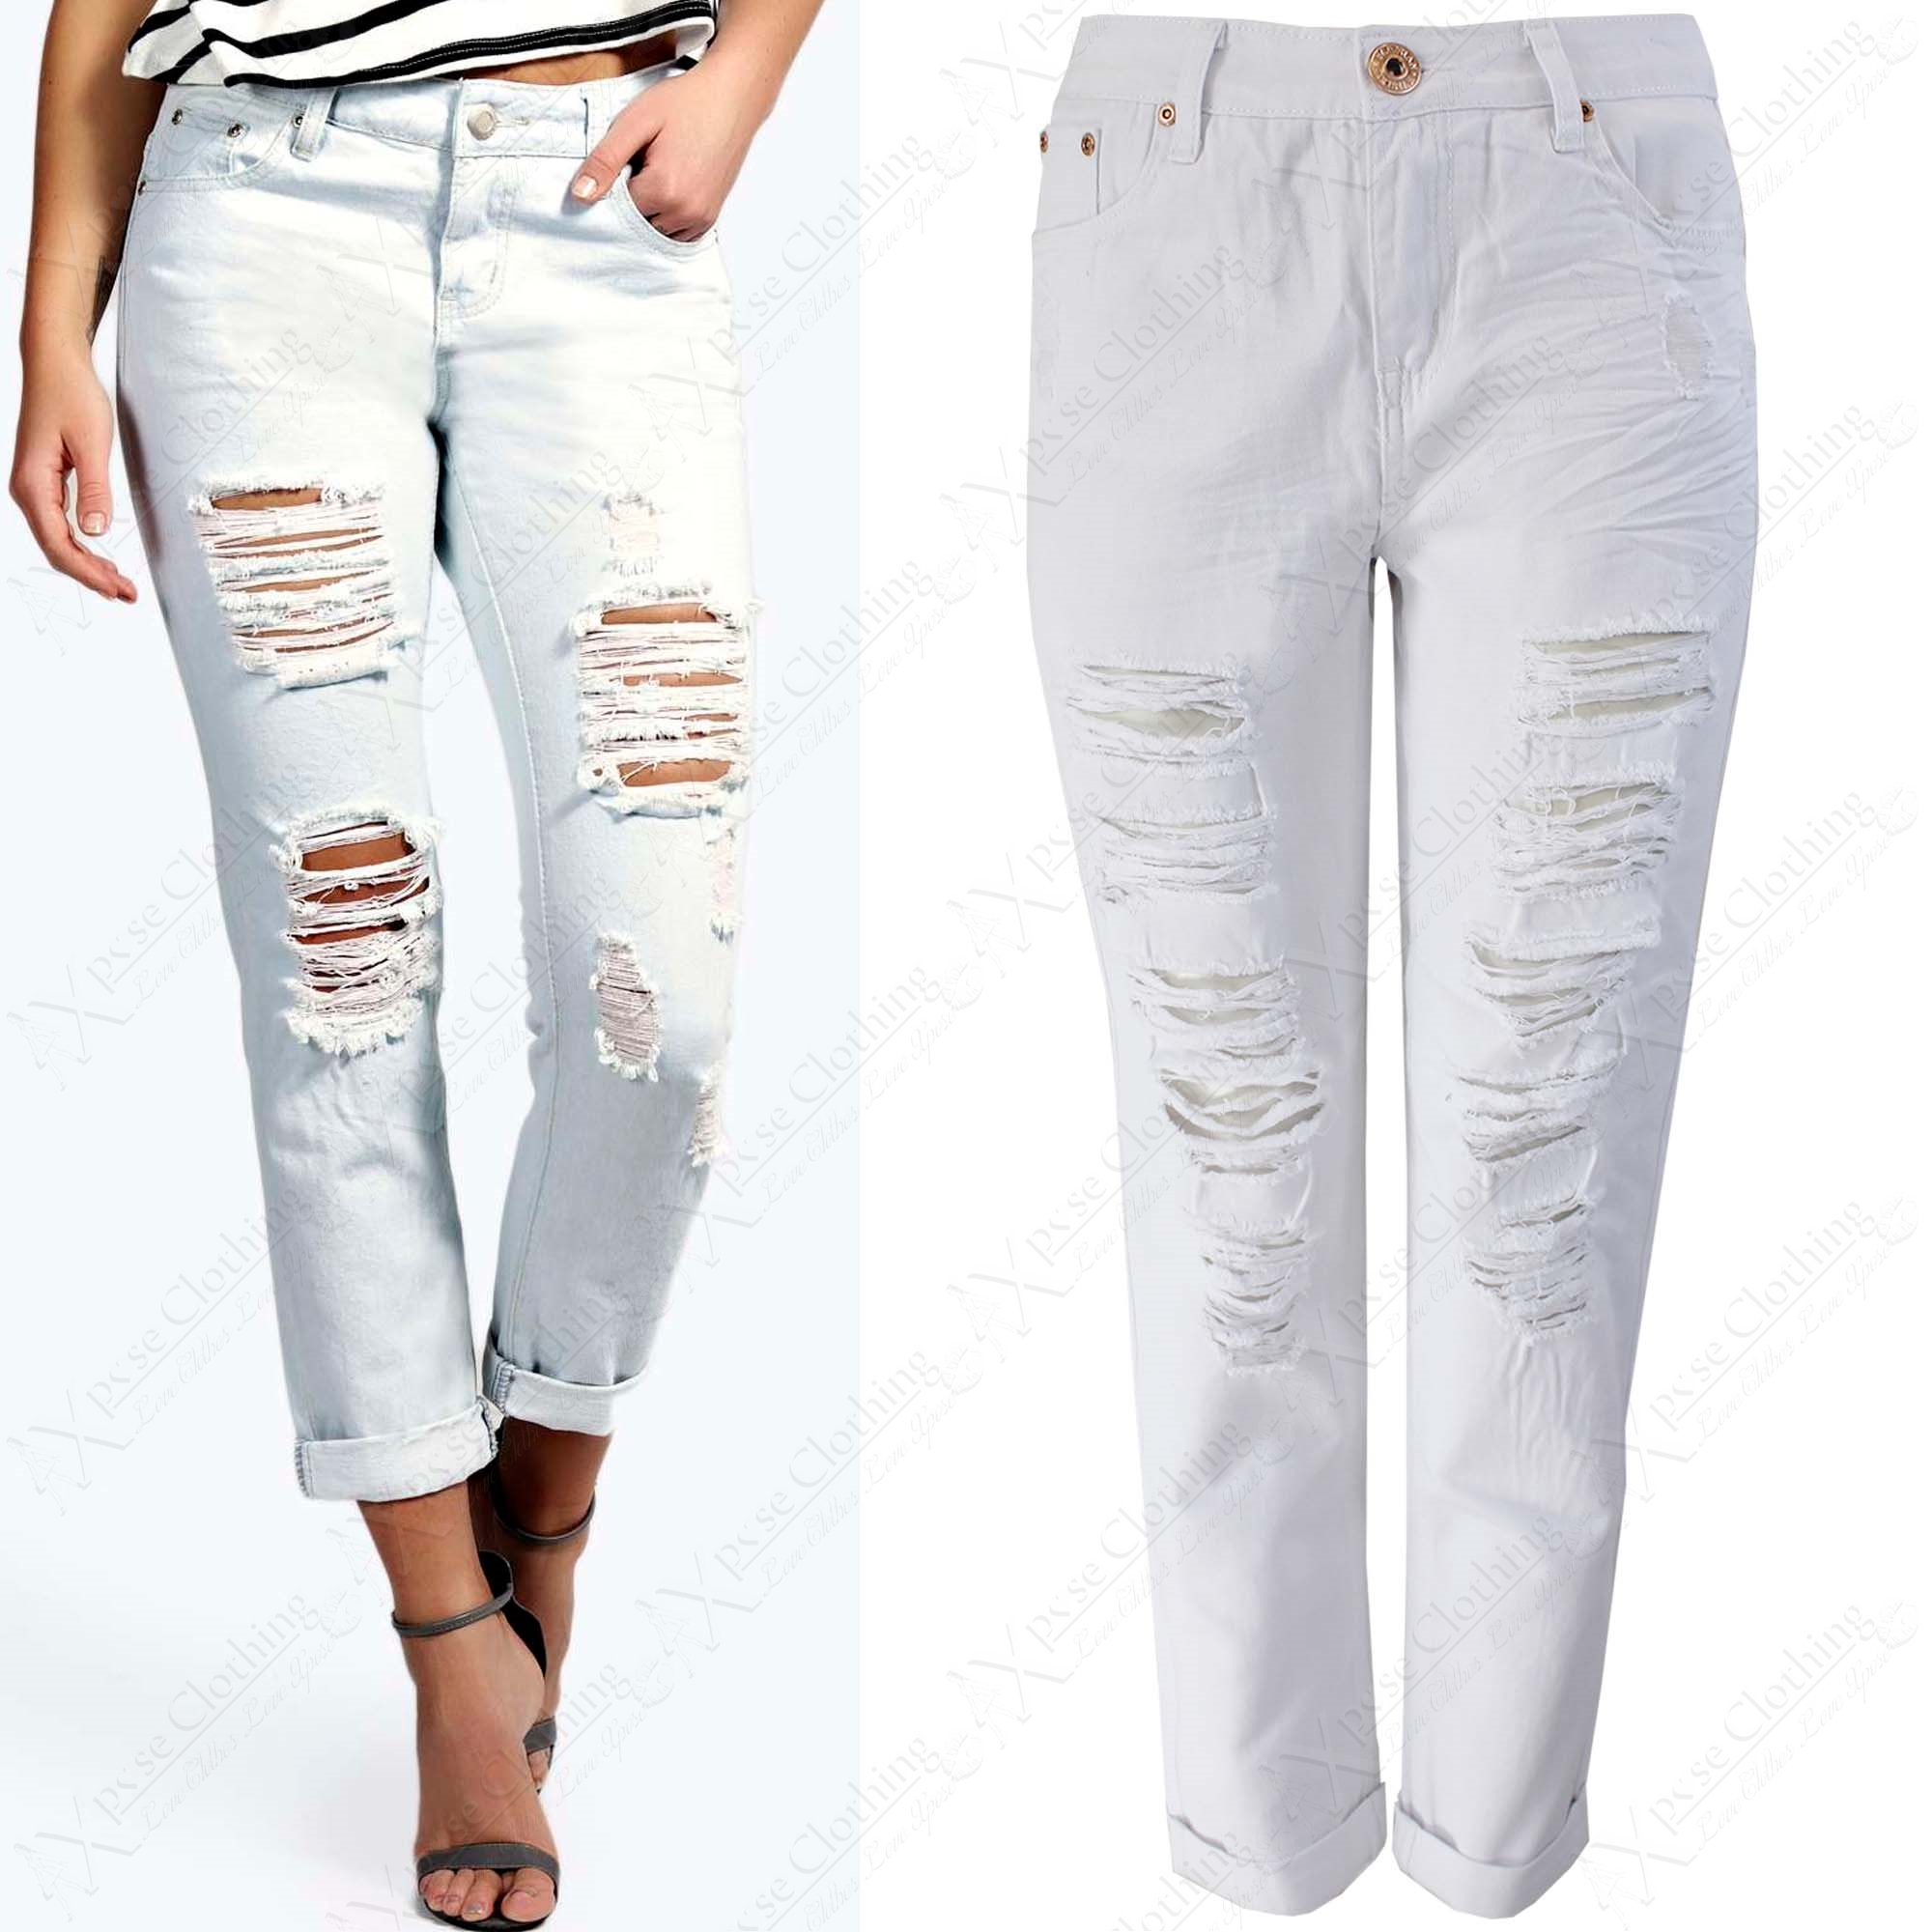 NEW WOMEN LADIES RIPPED CUT BOYFRIEND JEANS WHITE STRETCH DENIM ...